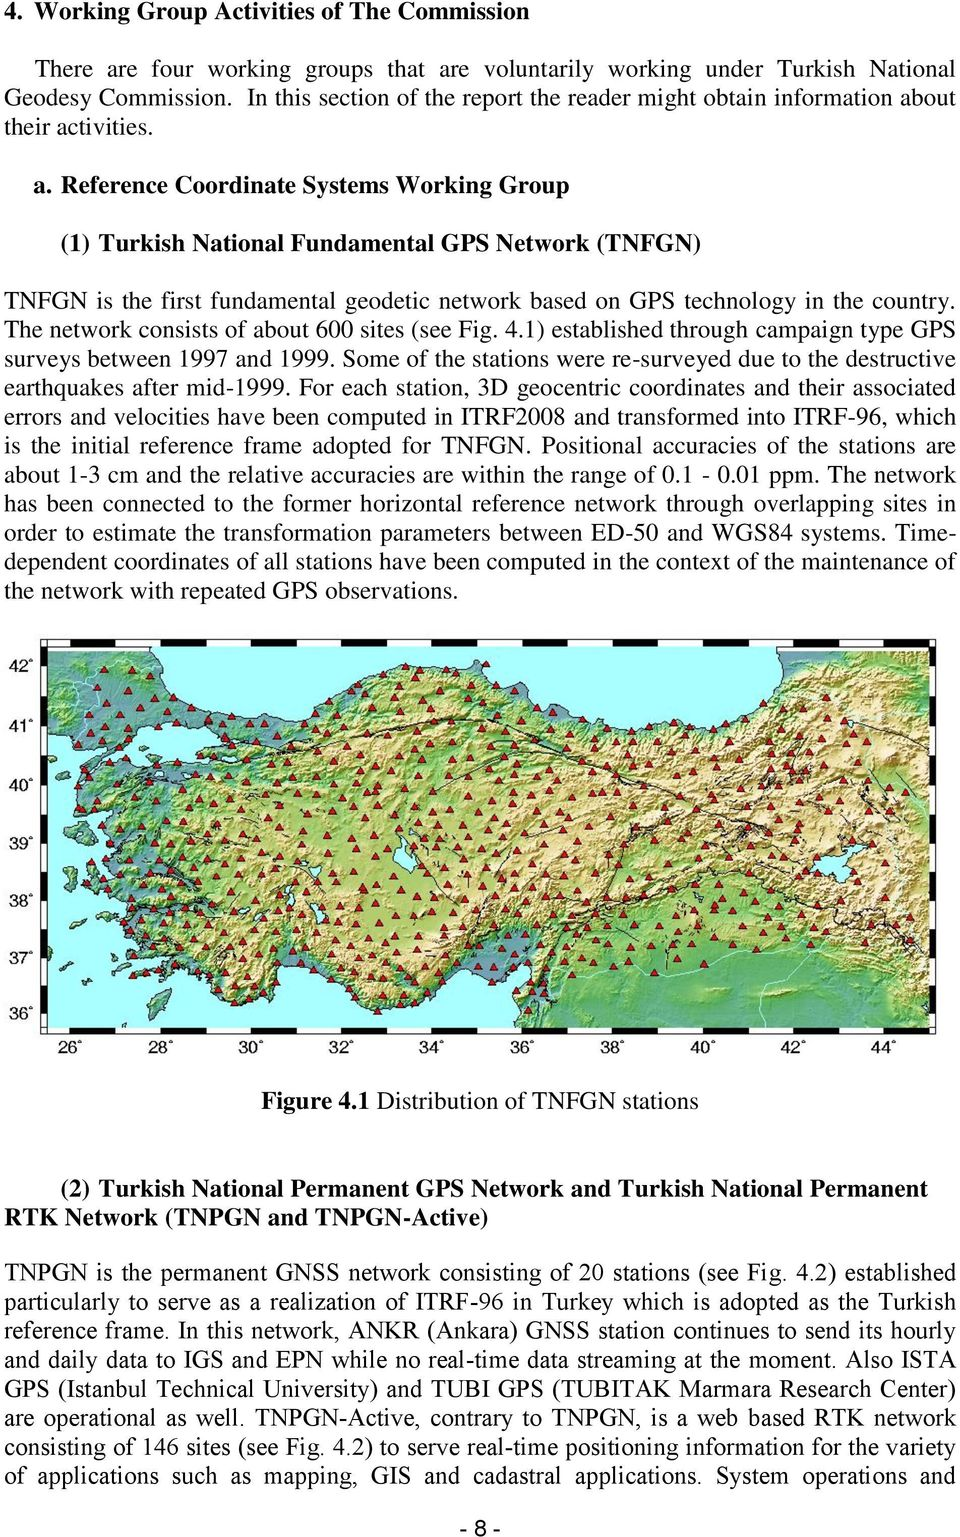 out their activities. a. Reference Coordinate Systems Working Group (1) Turkish National Fundamental GPS Network (TNFGN) TNFGN is the first fundamental geodetic network based on GPS technology in the country.